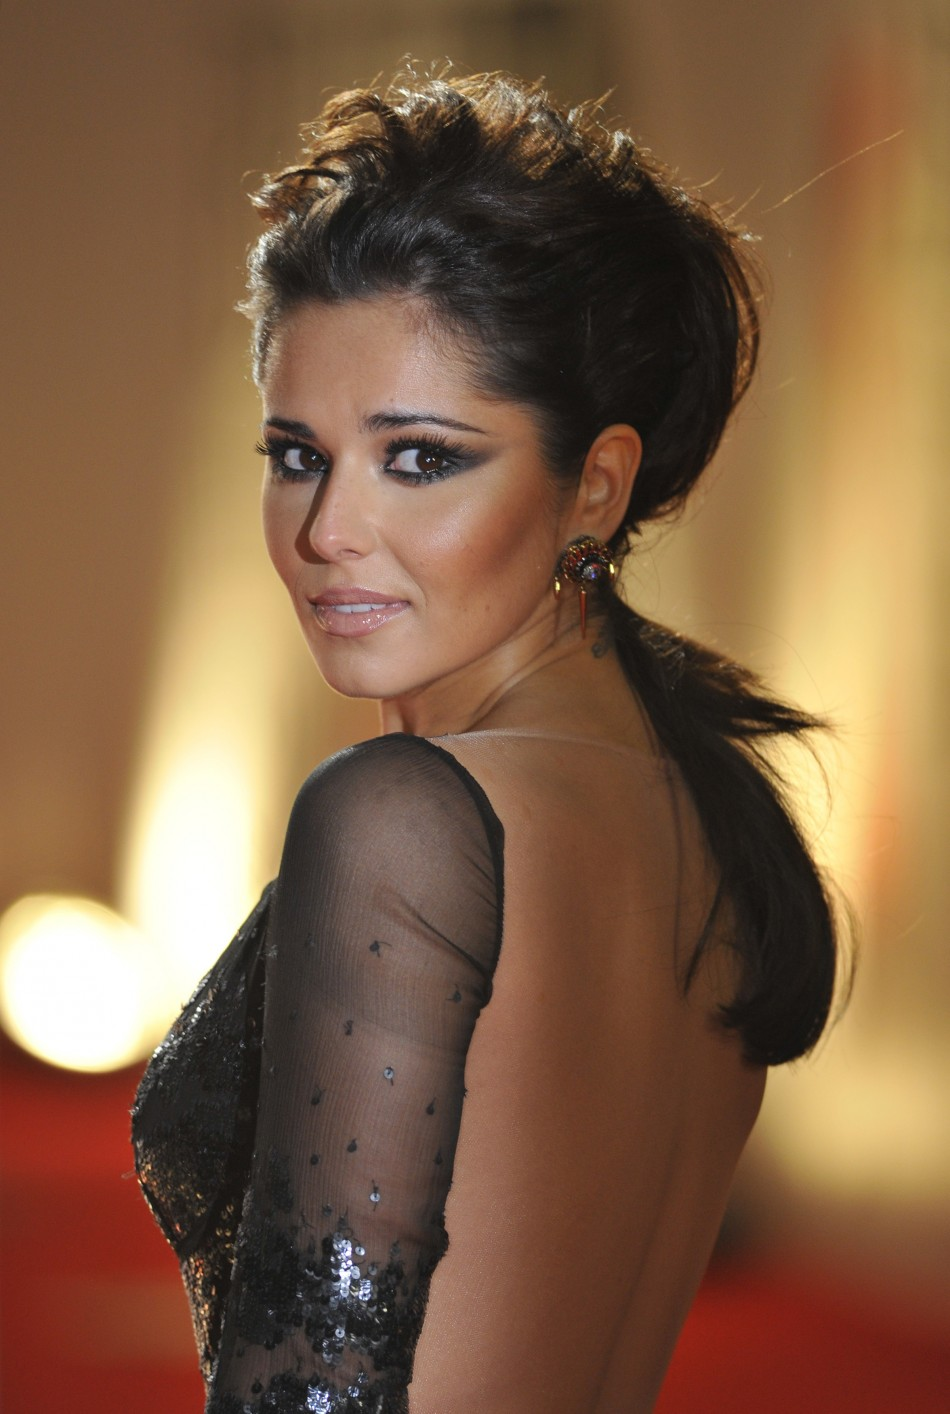 Cheryl Cole Lands Hollywood Role in film alongside ... Cheryl Cole Photos